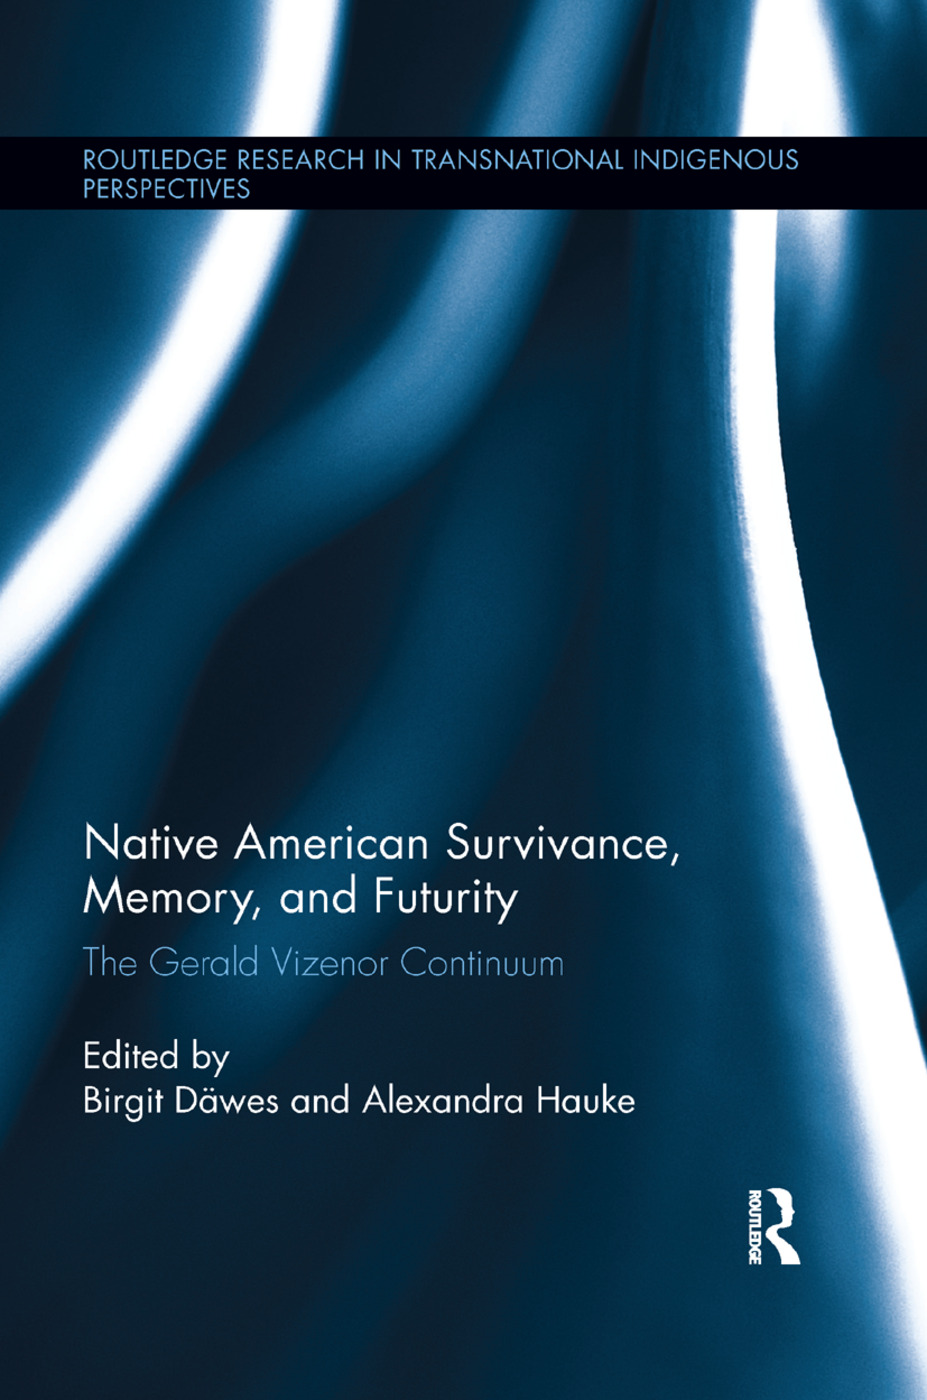 Native American Survivance, Memory, and Futurity: The Gerald Vizenor Continuum book cover